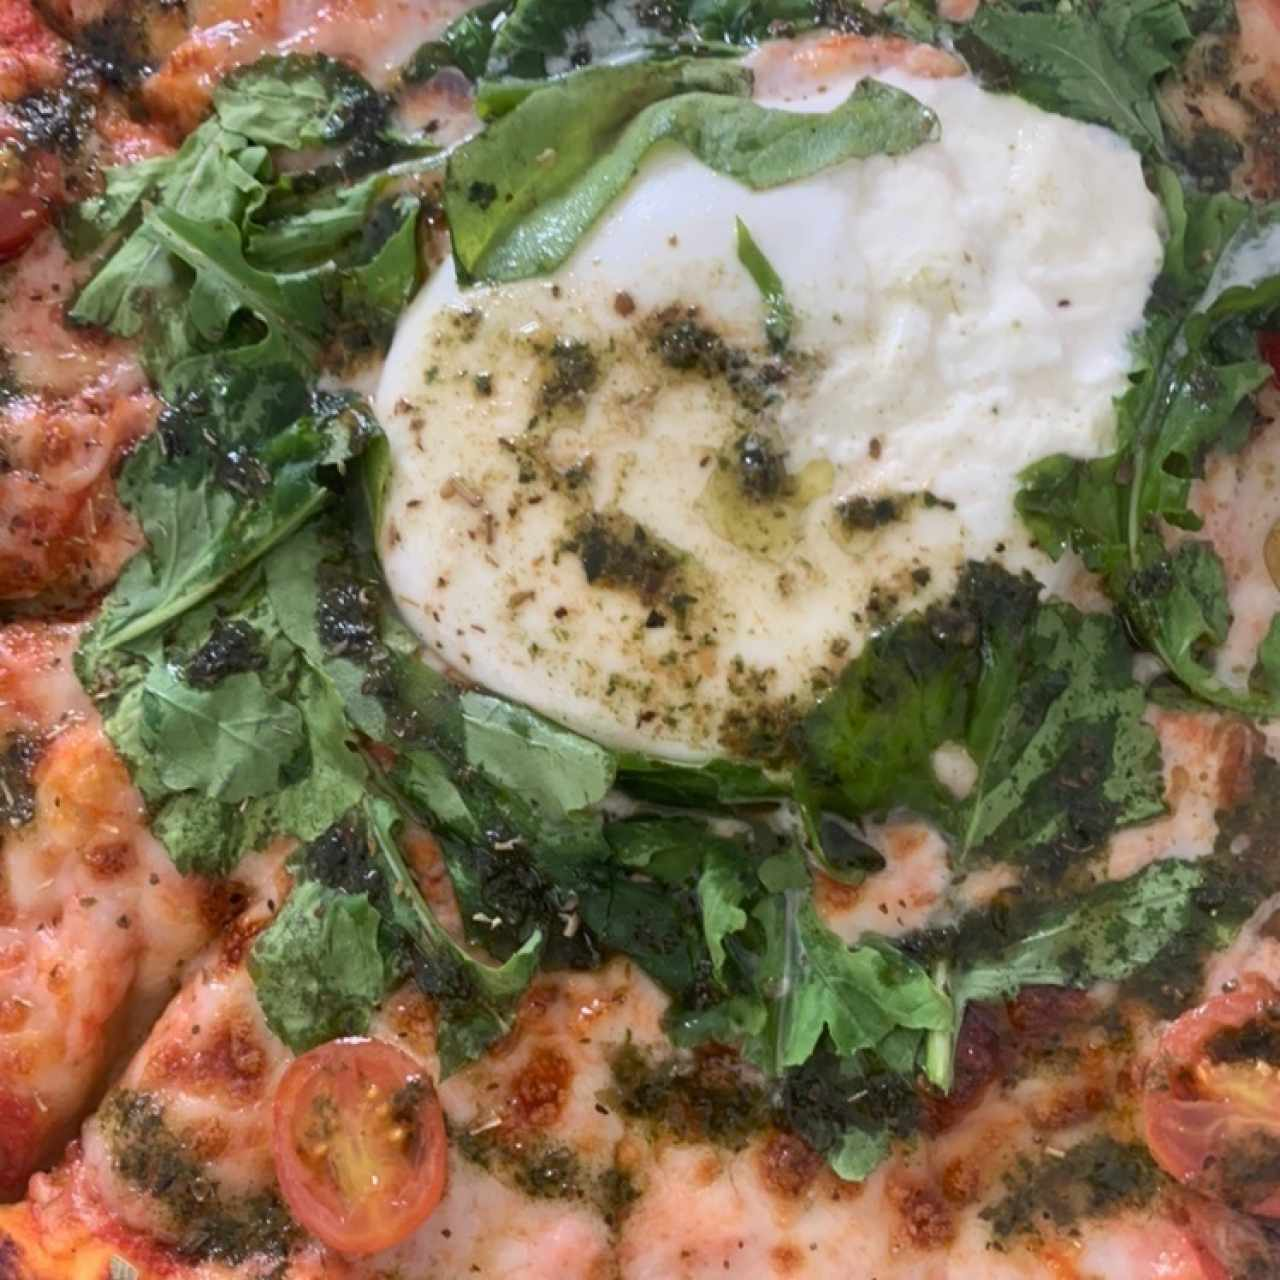 Pizza Gourmet - Pizza Burrata